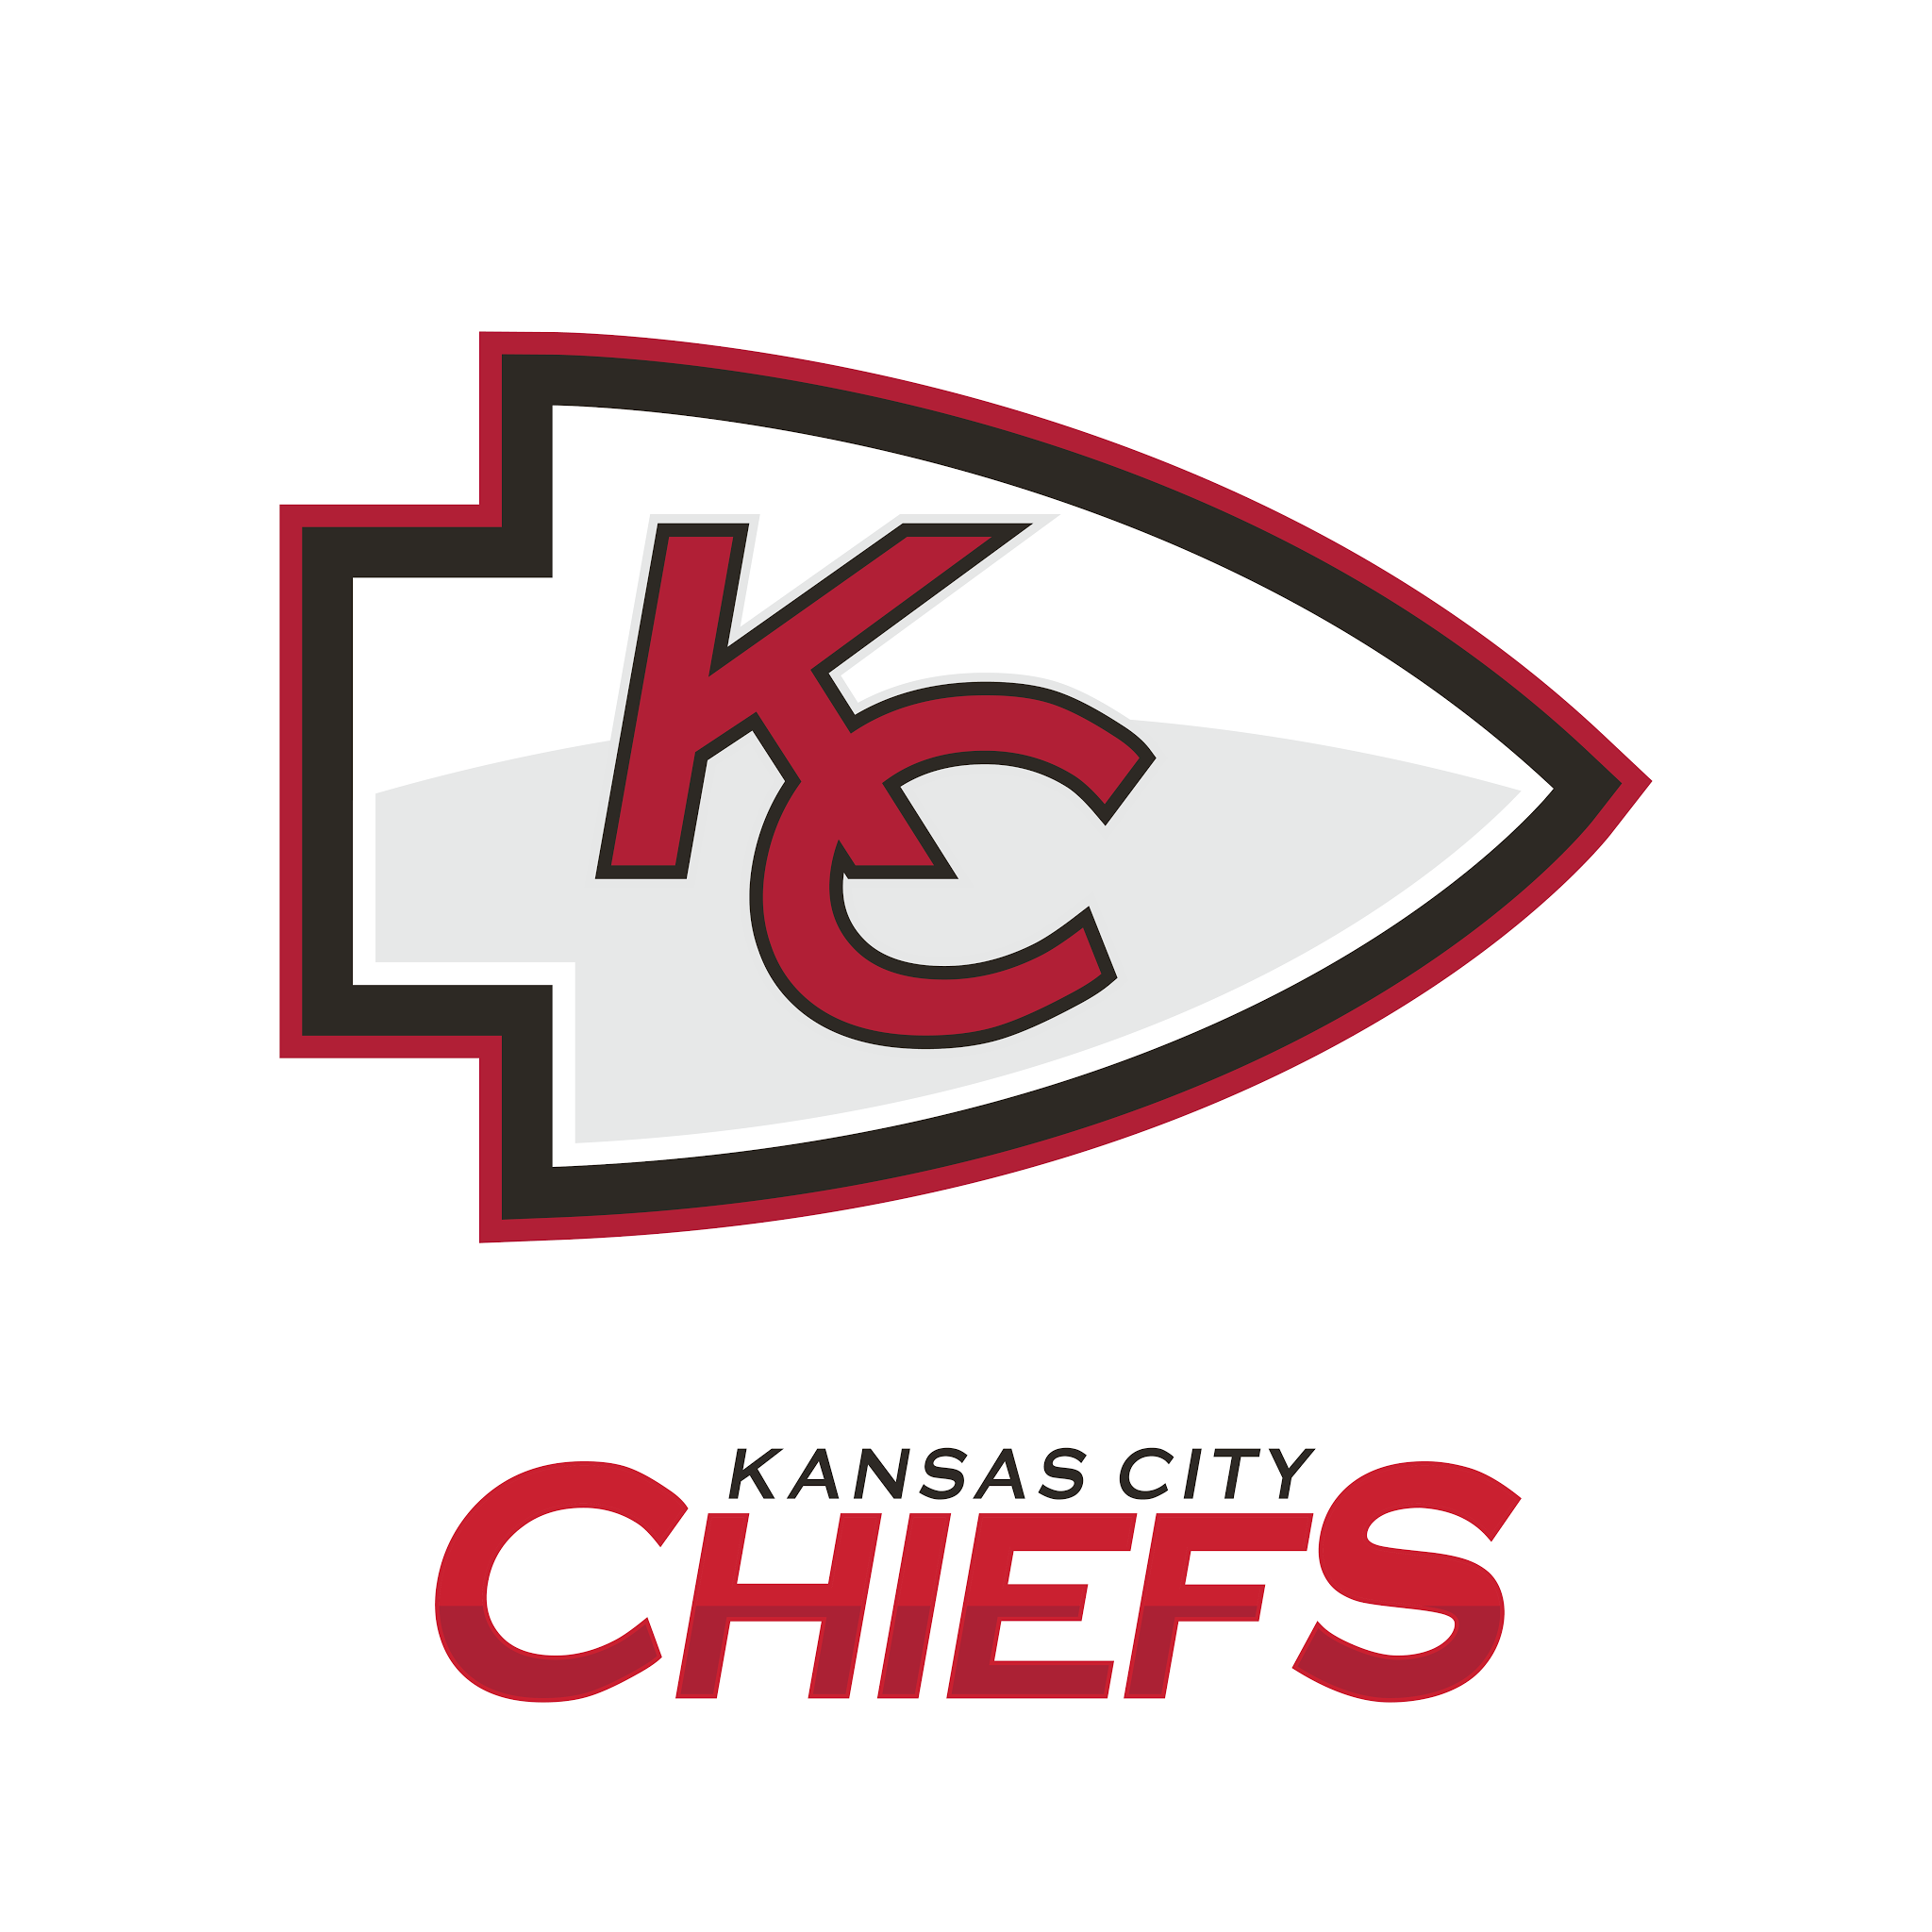 Chiefs+logo-01.png